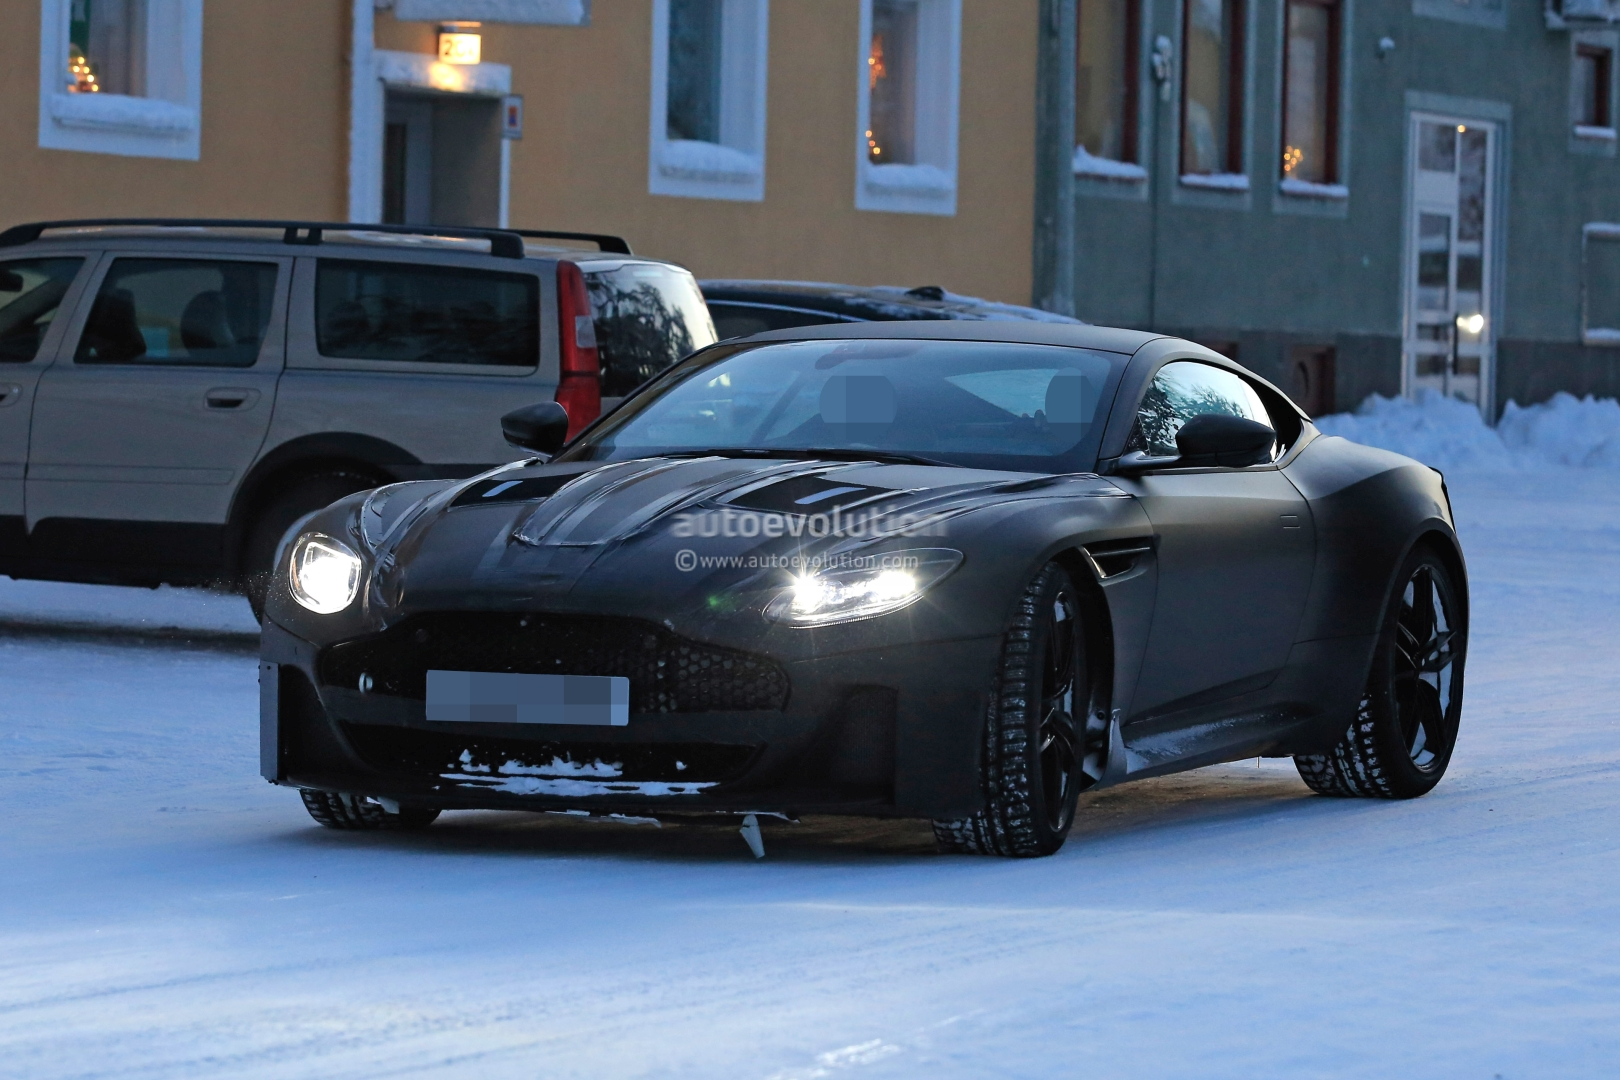 Spyshots: 2019 Aston Martin Vanquish Testing In the Snow Looks Gorgeous - autoevolution